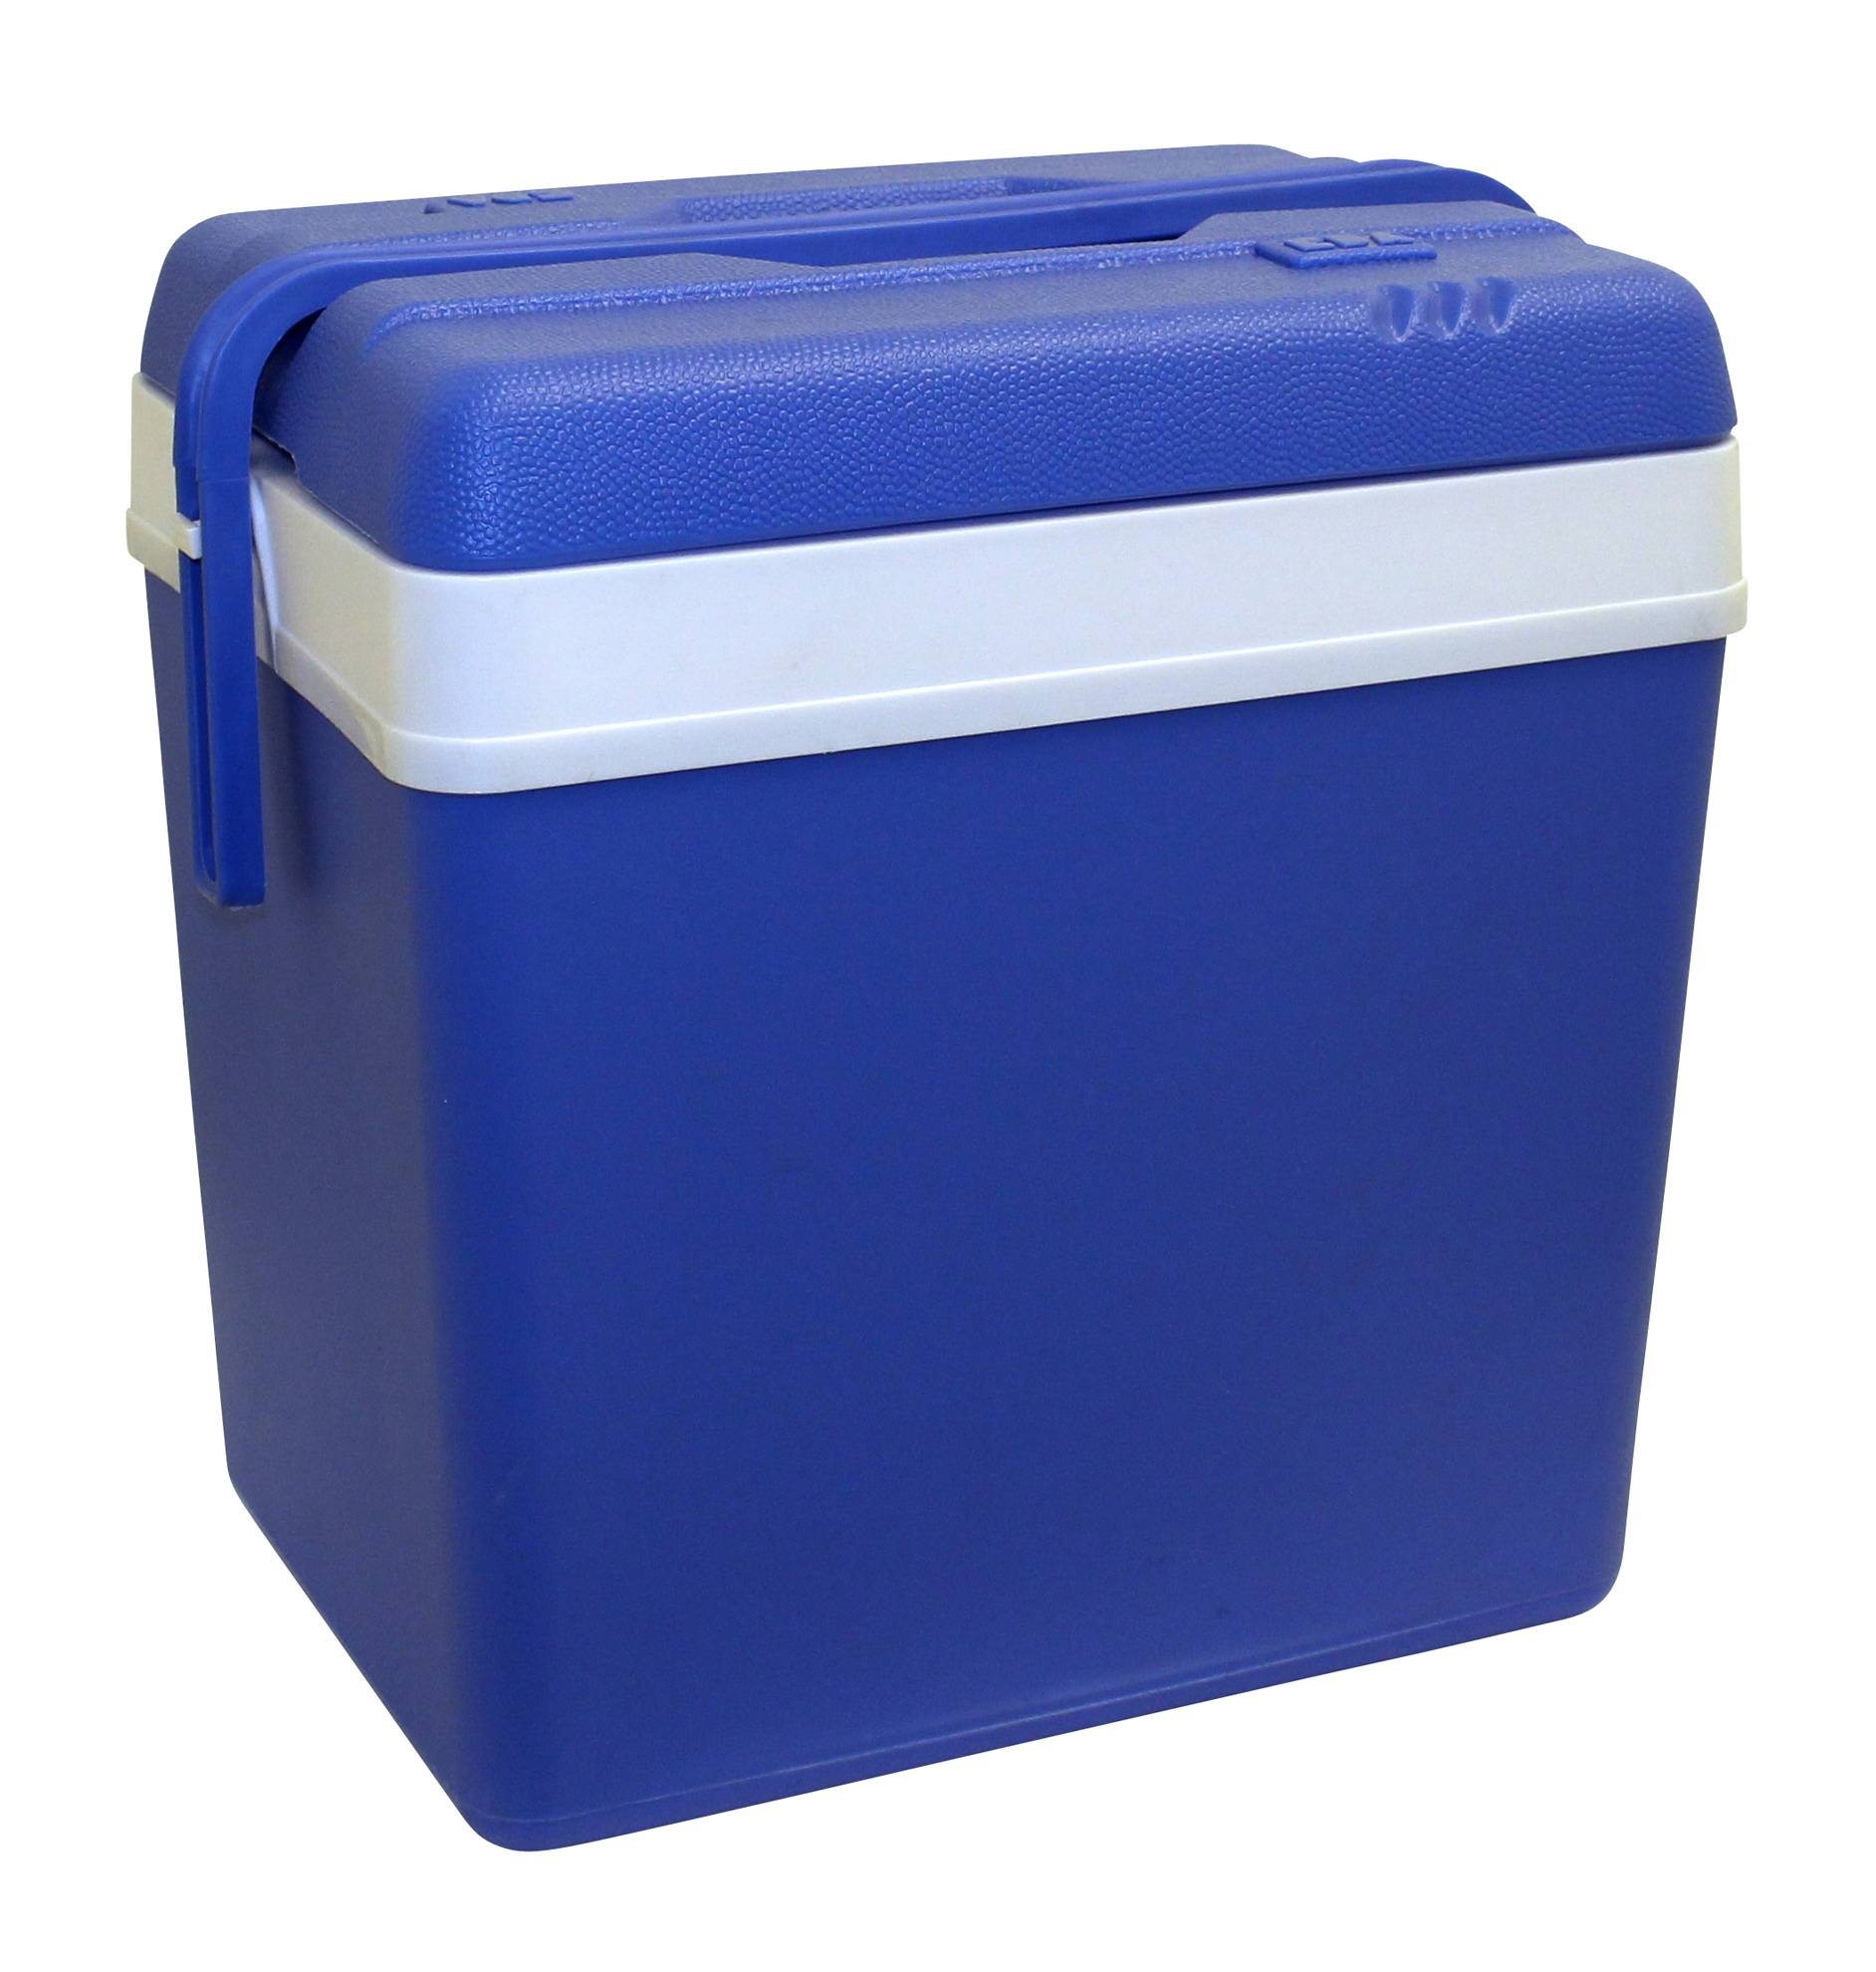 Ice Box Cooler : Large l blue cooler box camping beach picnic ice food